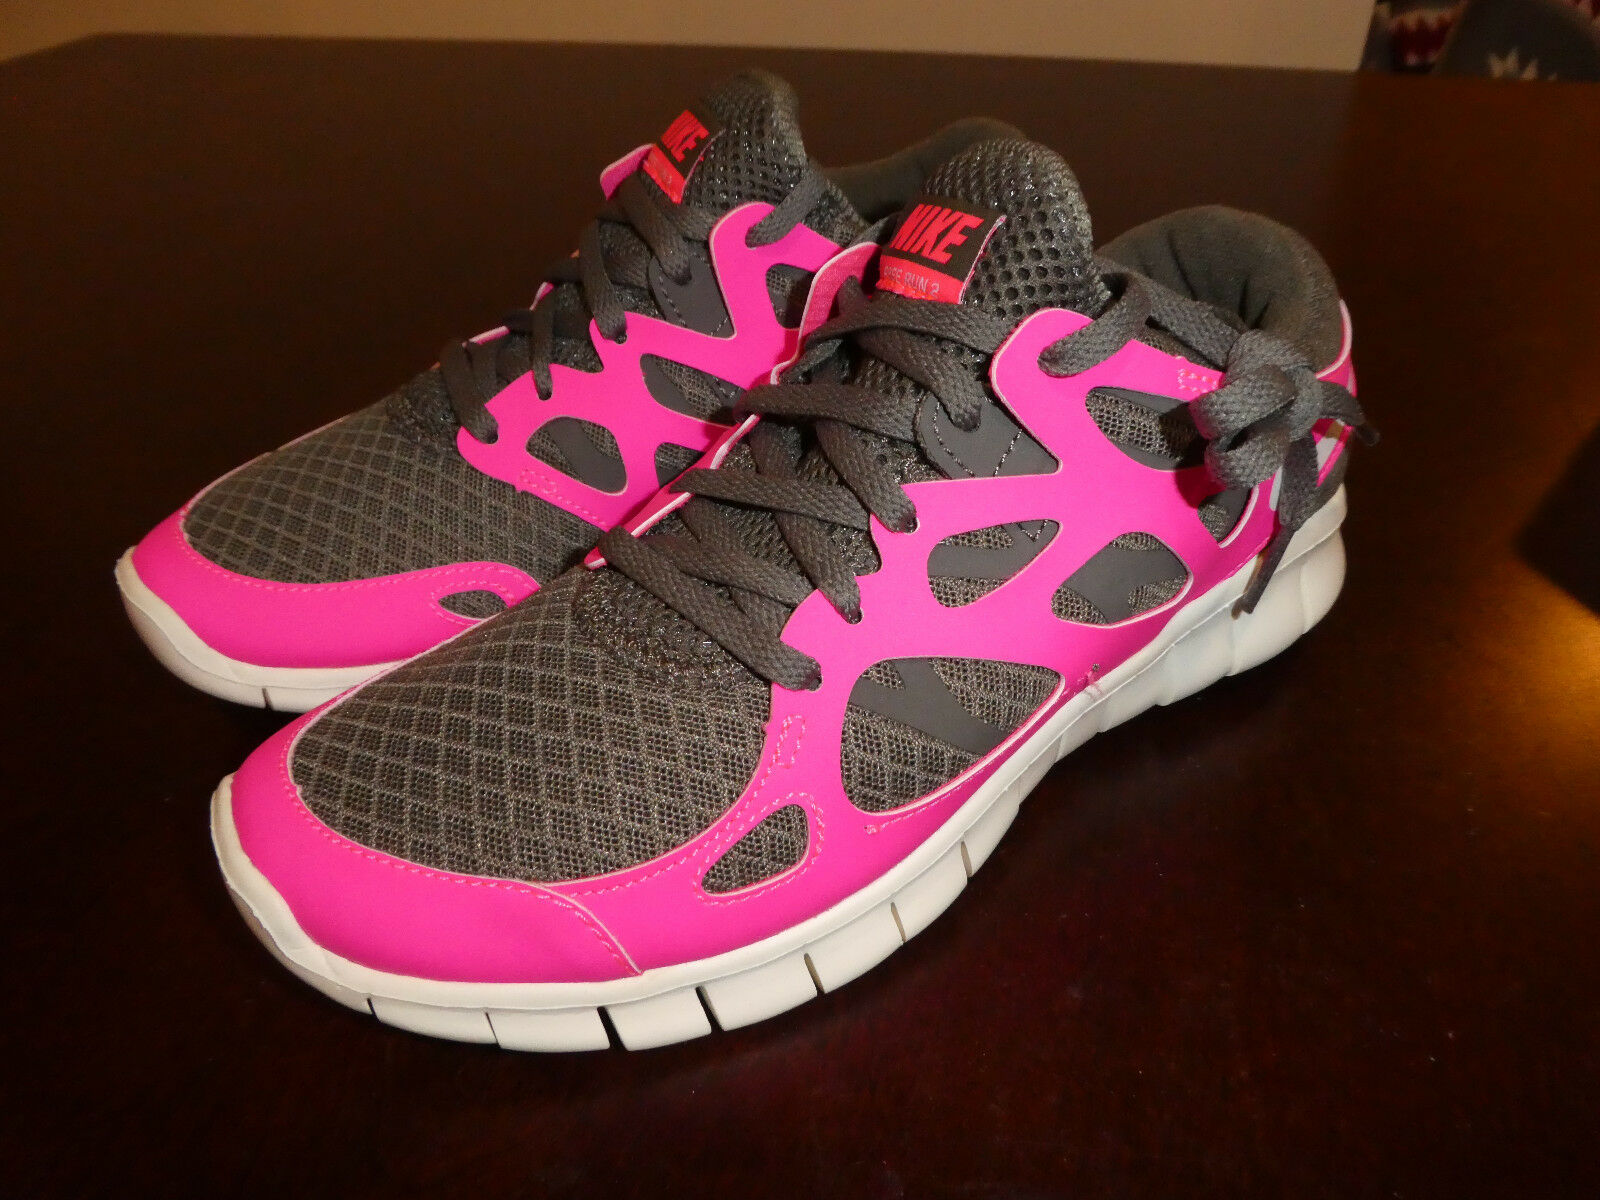 Nike womens 443816 206 Free Run +2 shoes size 6.5 new  shoes +2 a37013